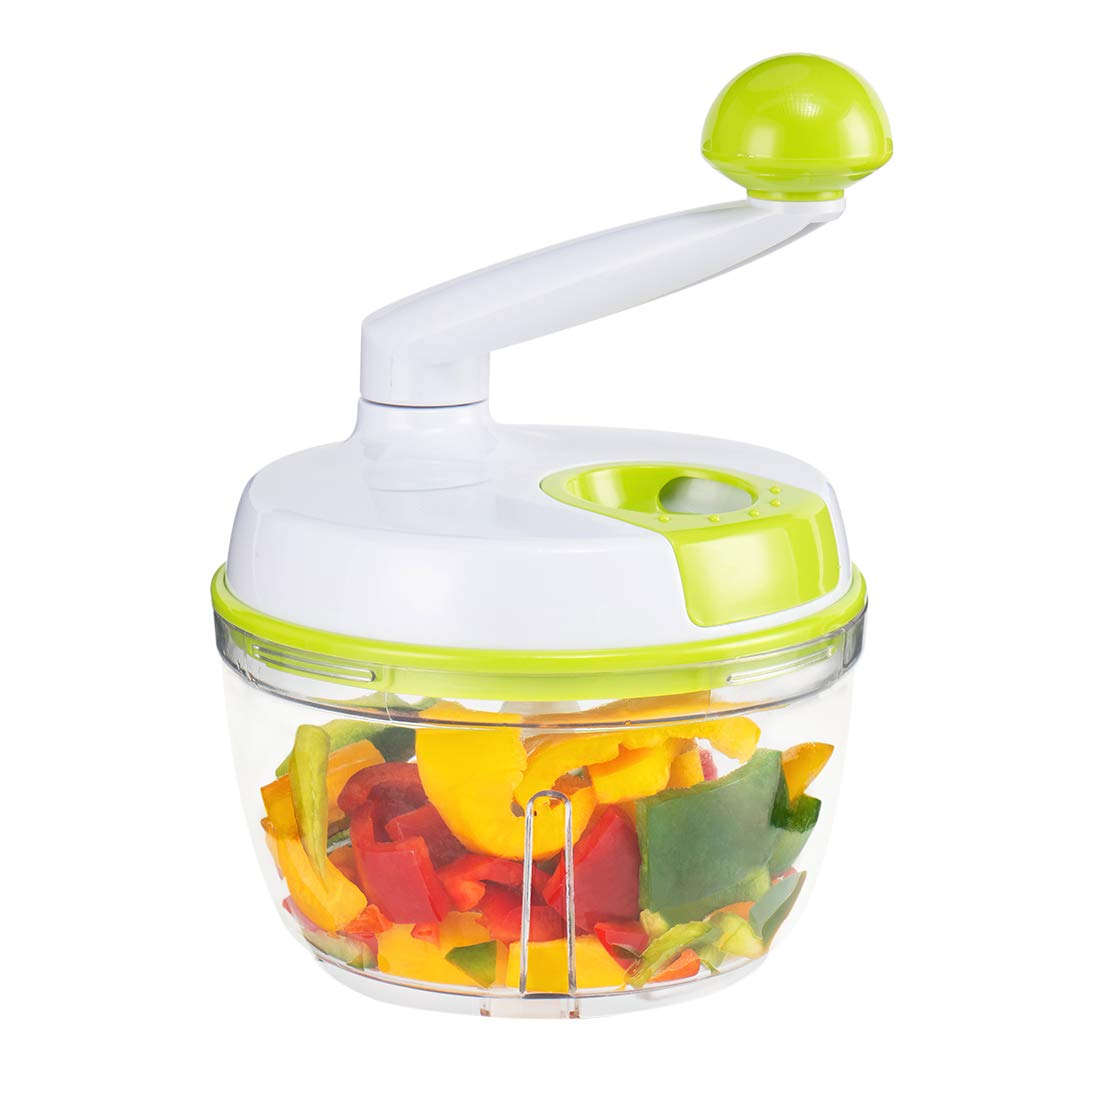 MIGECON Manual Food Processor, Vegetable Chopper with Built-In Egg White Separator, Meat Mincer for Fruits,Vegetables,Meats,Nuts and Salad